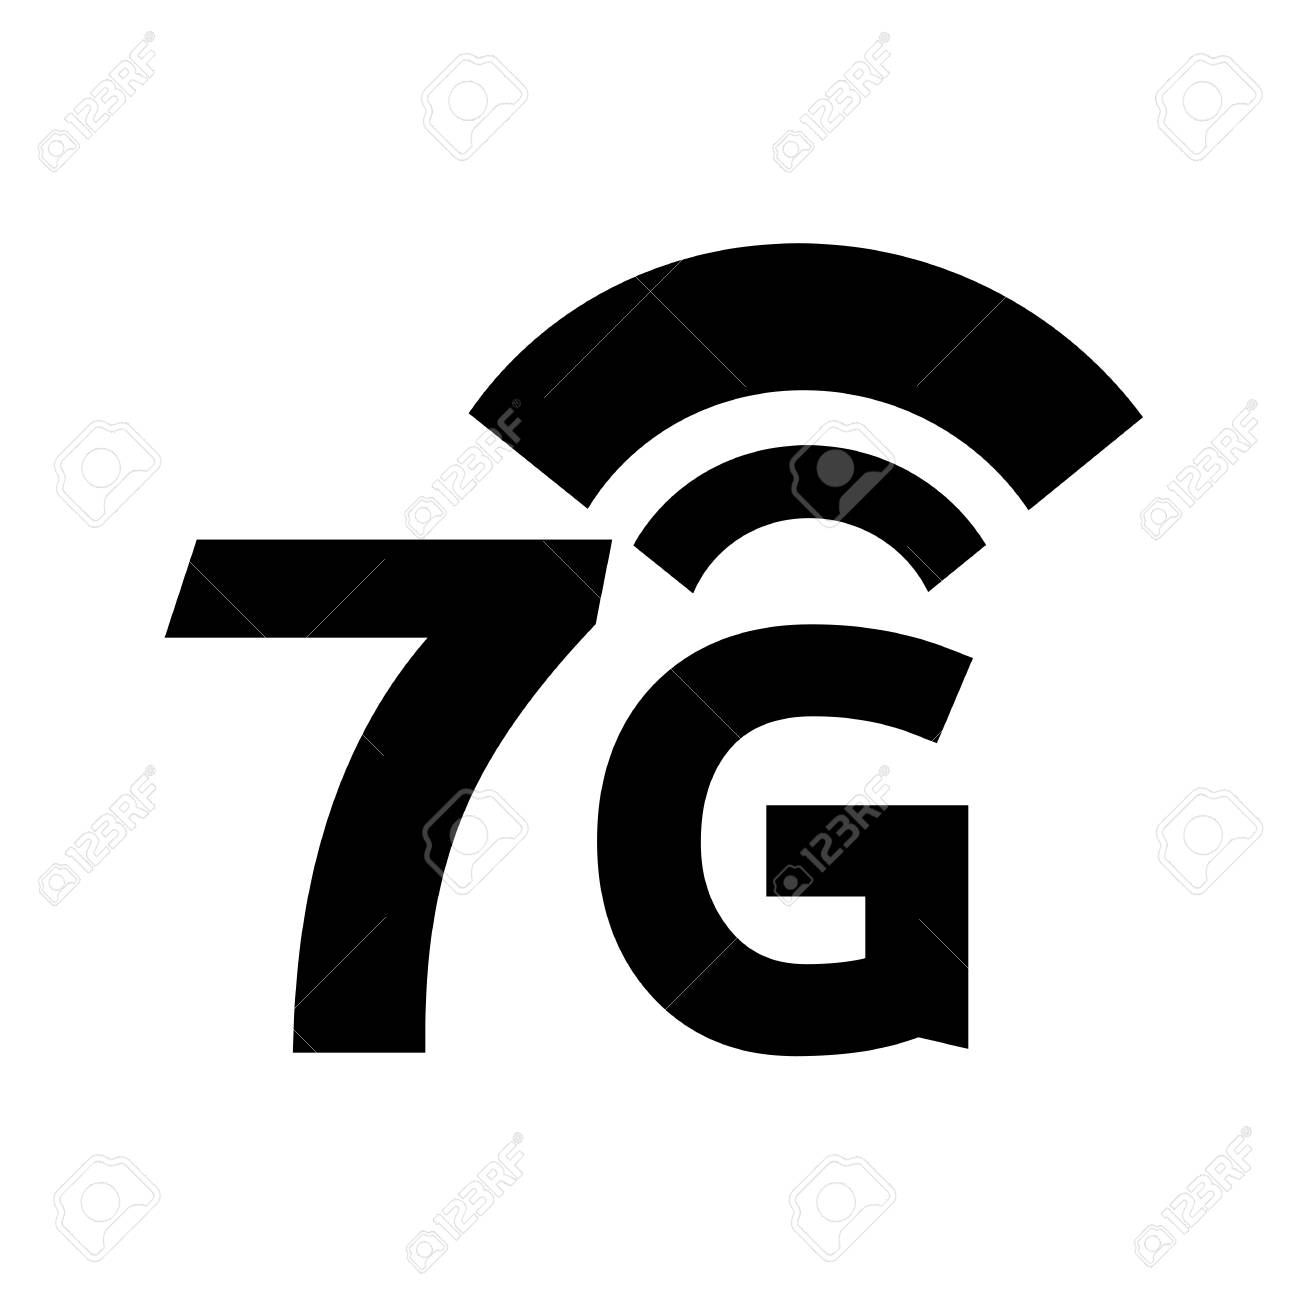 Cool wireless internet icon pictures inspiration wiring diagram 7g wireless internet icon royalty free cliparts vectors and buycottarizona Images